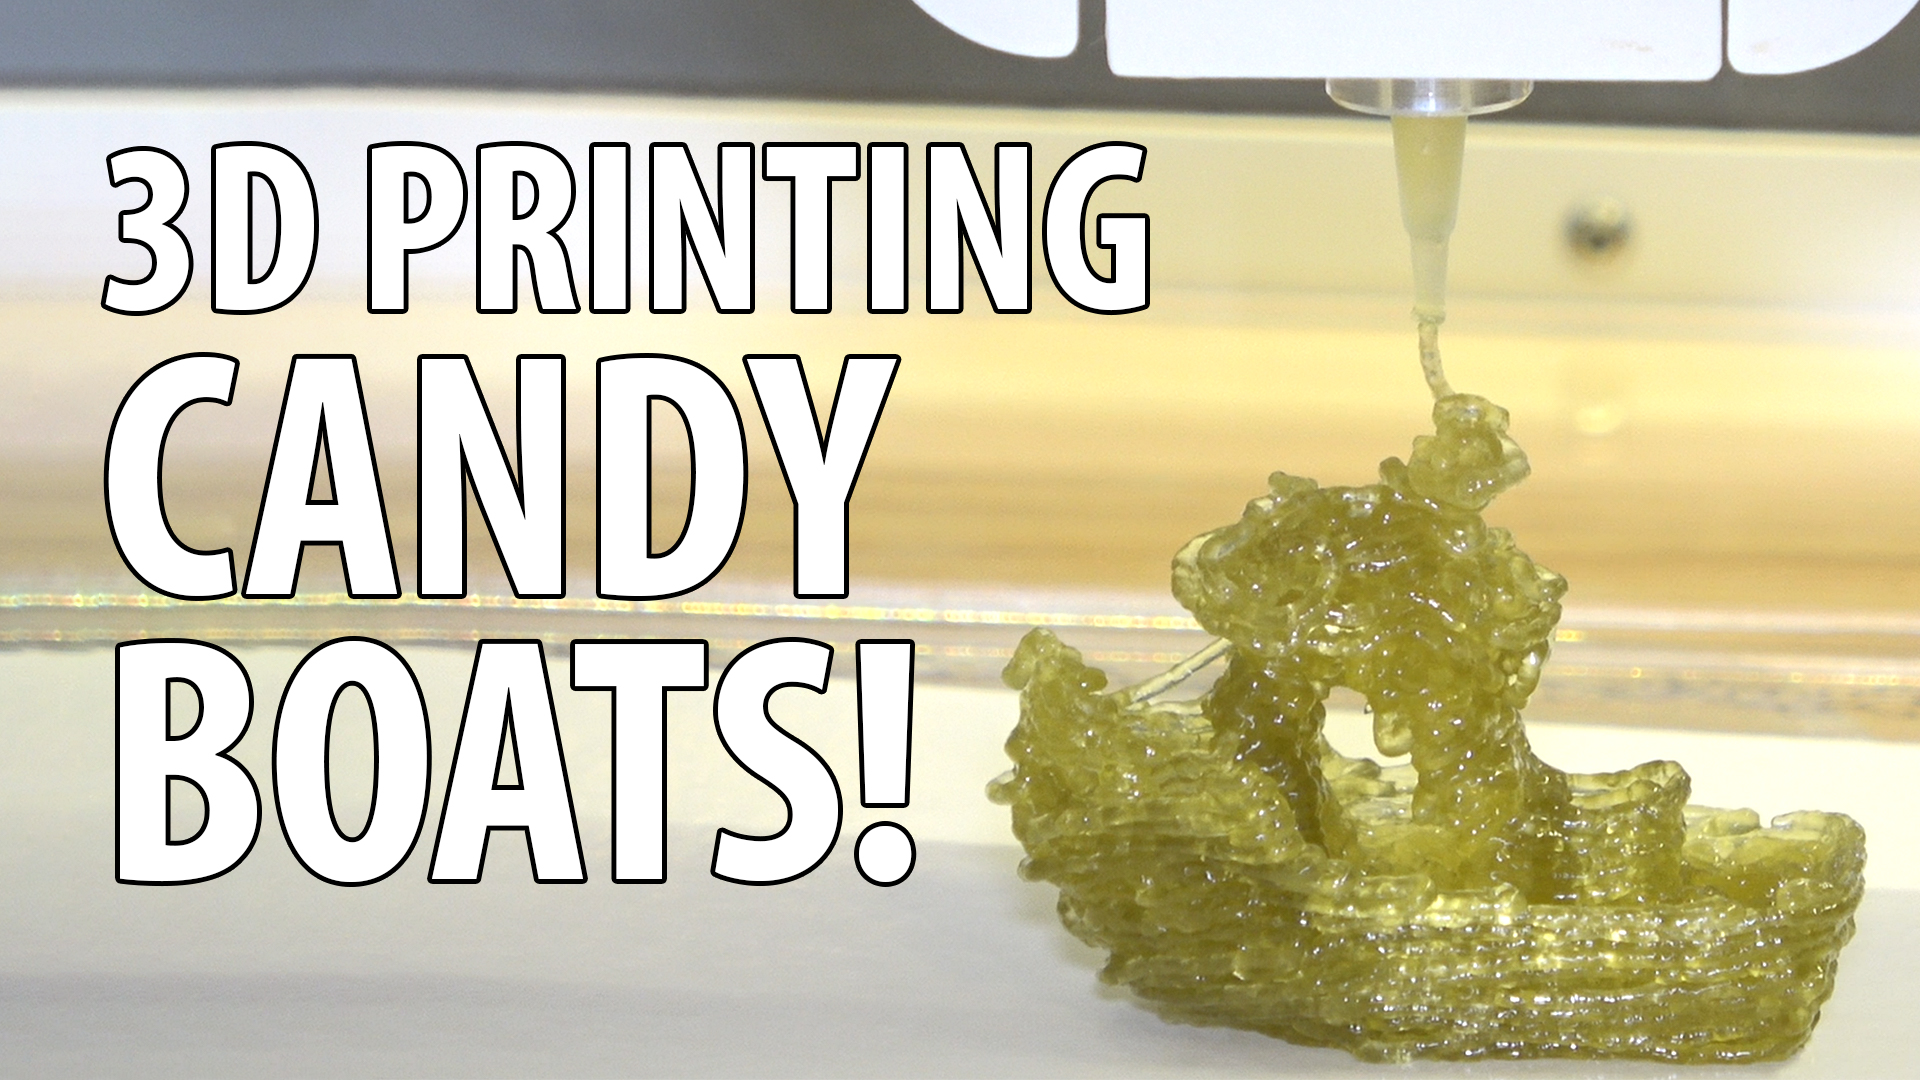 3D Printing a Candy 3DBenchy on the Magic Candy Factory